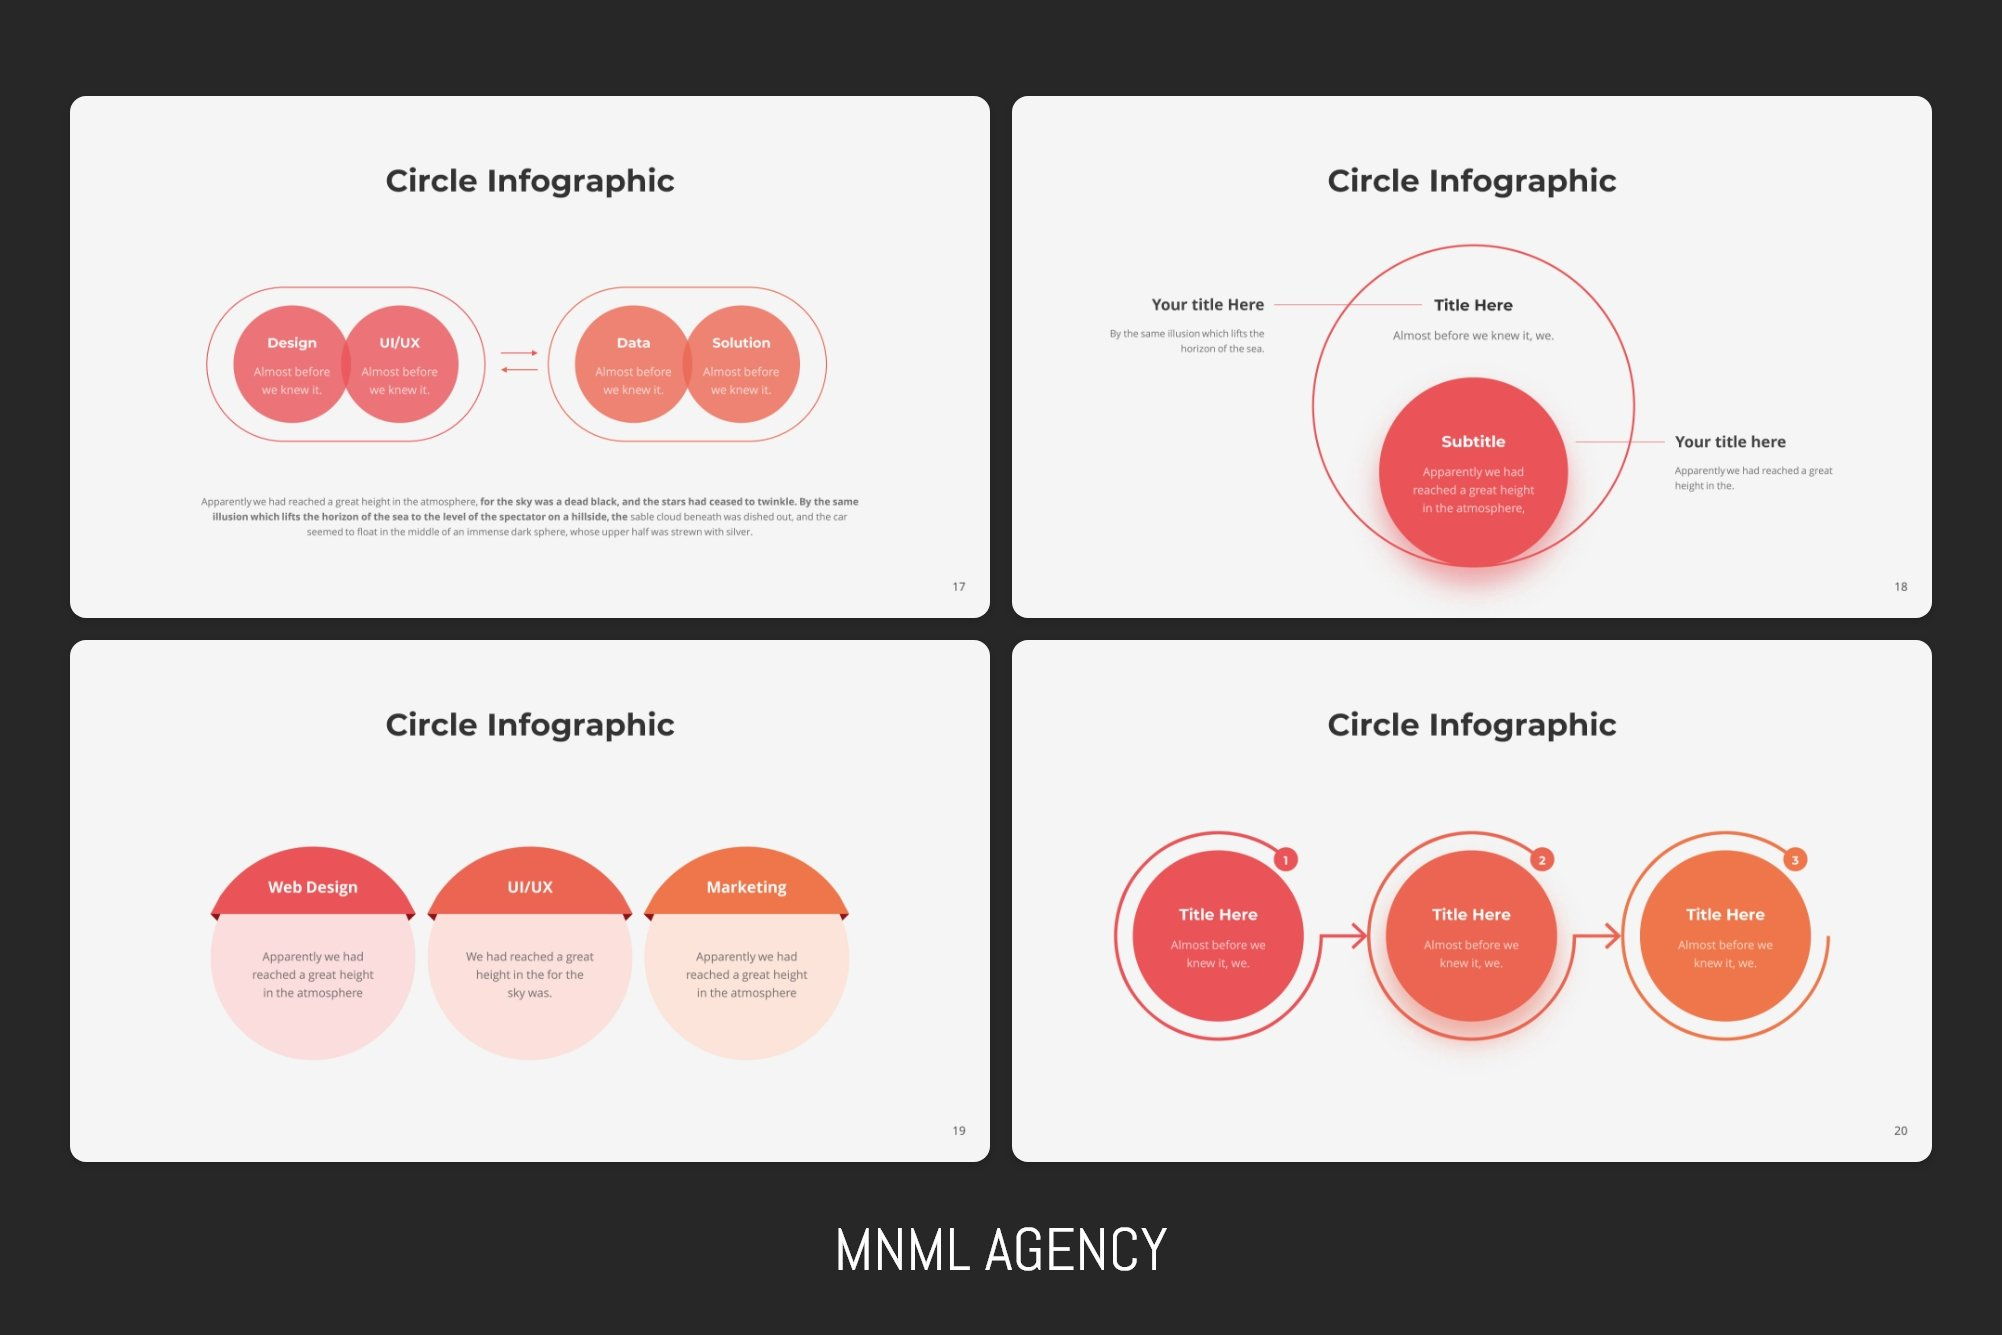 This infographic make presentation more contemporary and simple for understanding.